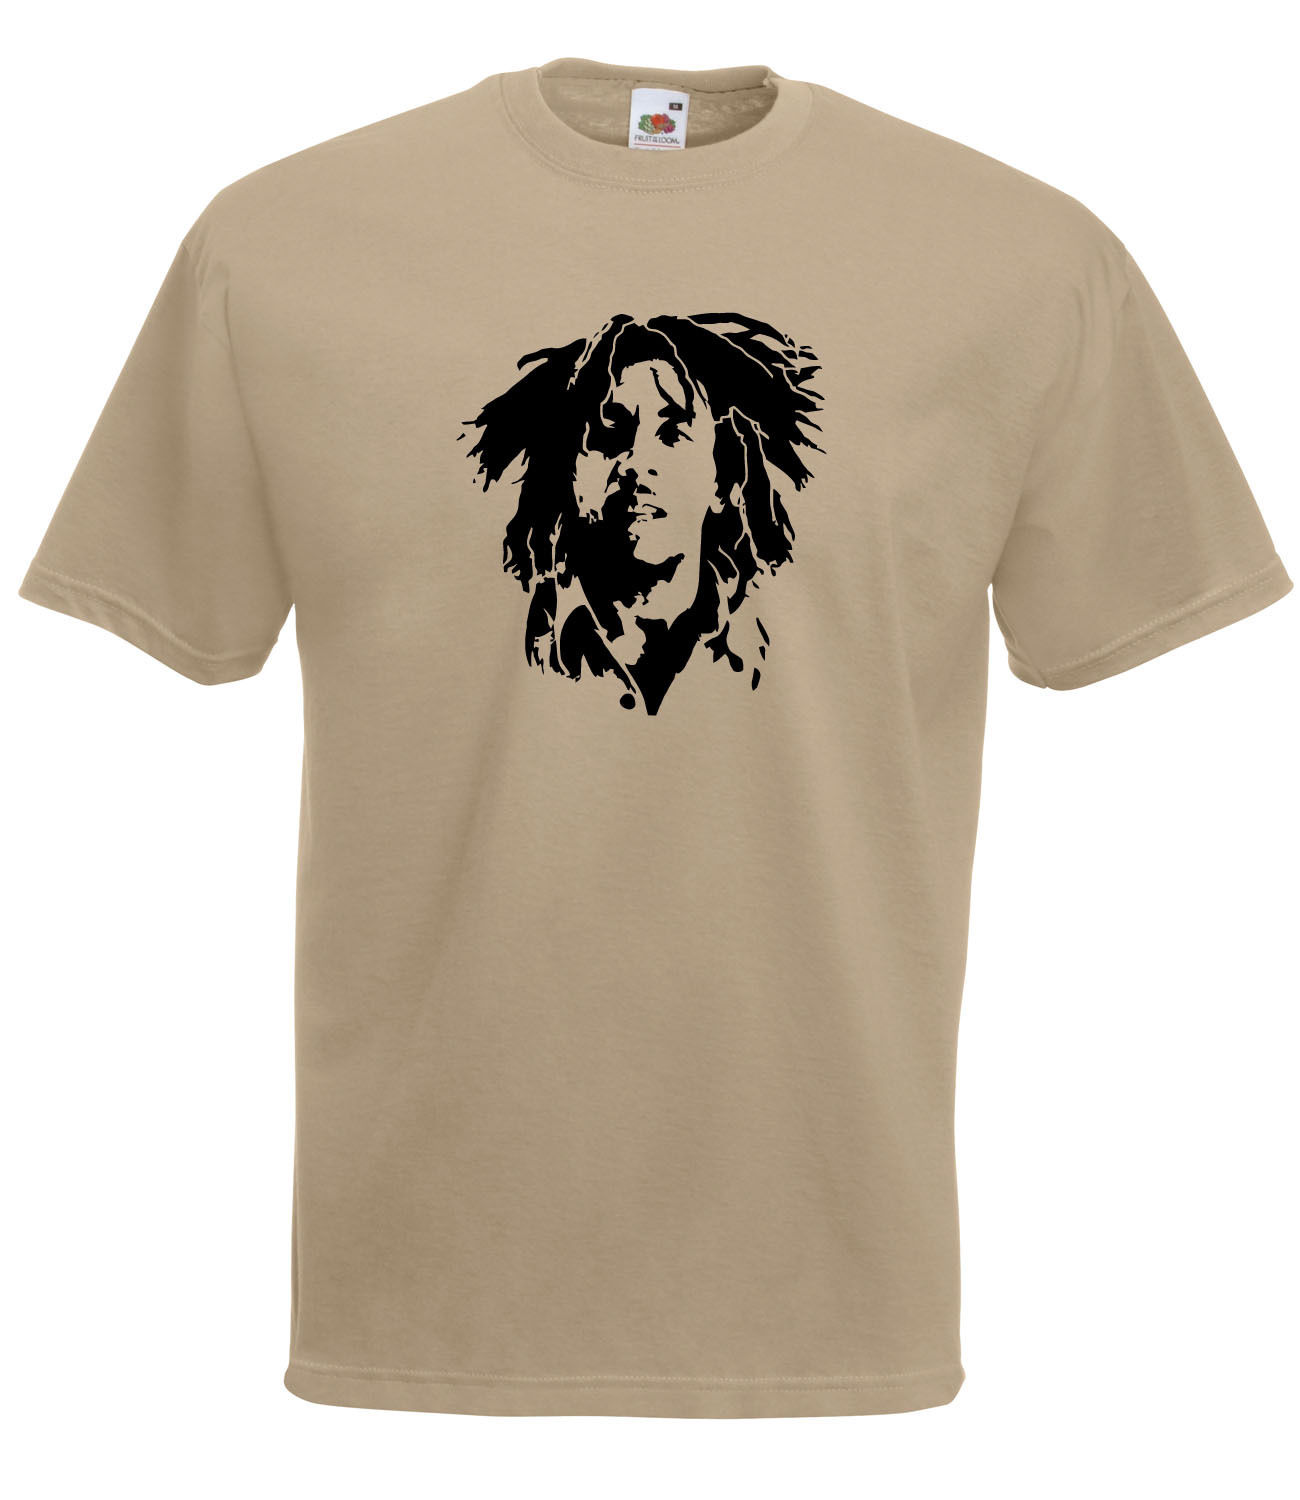 Bob Marley Graphic High Quality 100 Cotton Short Sleeve T